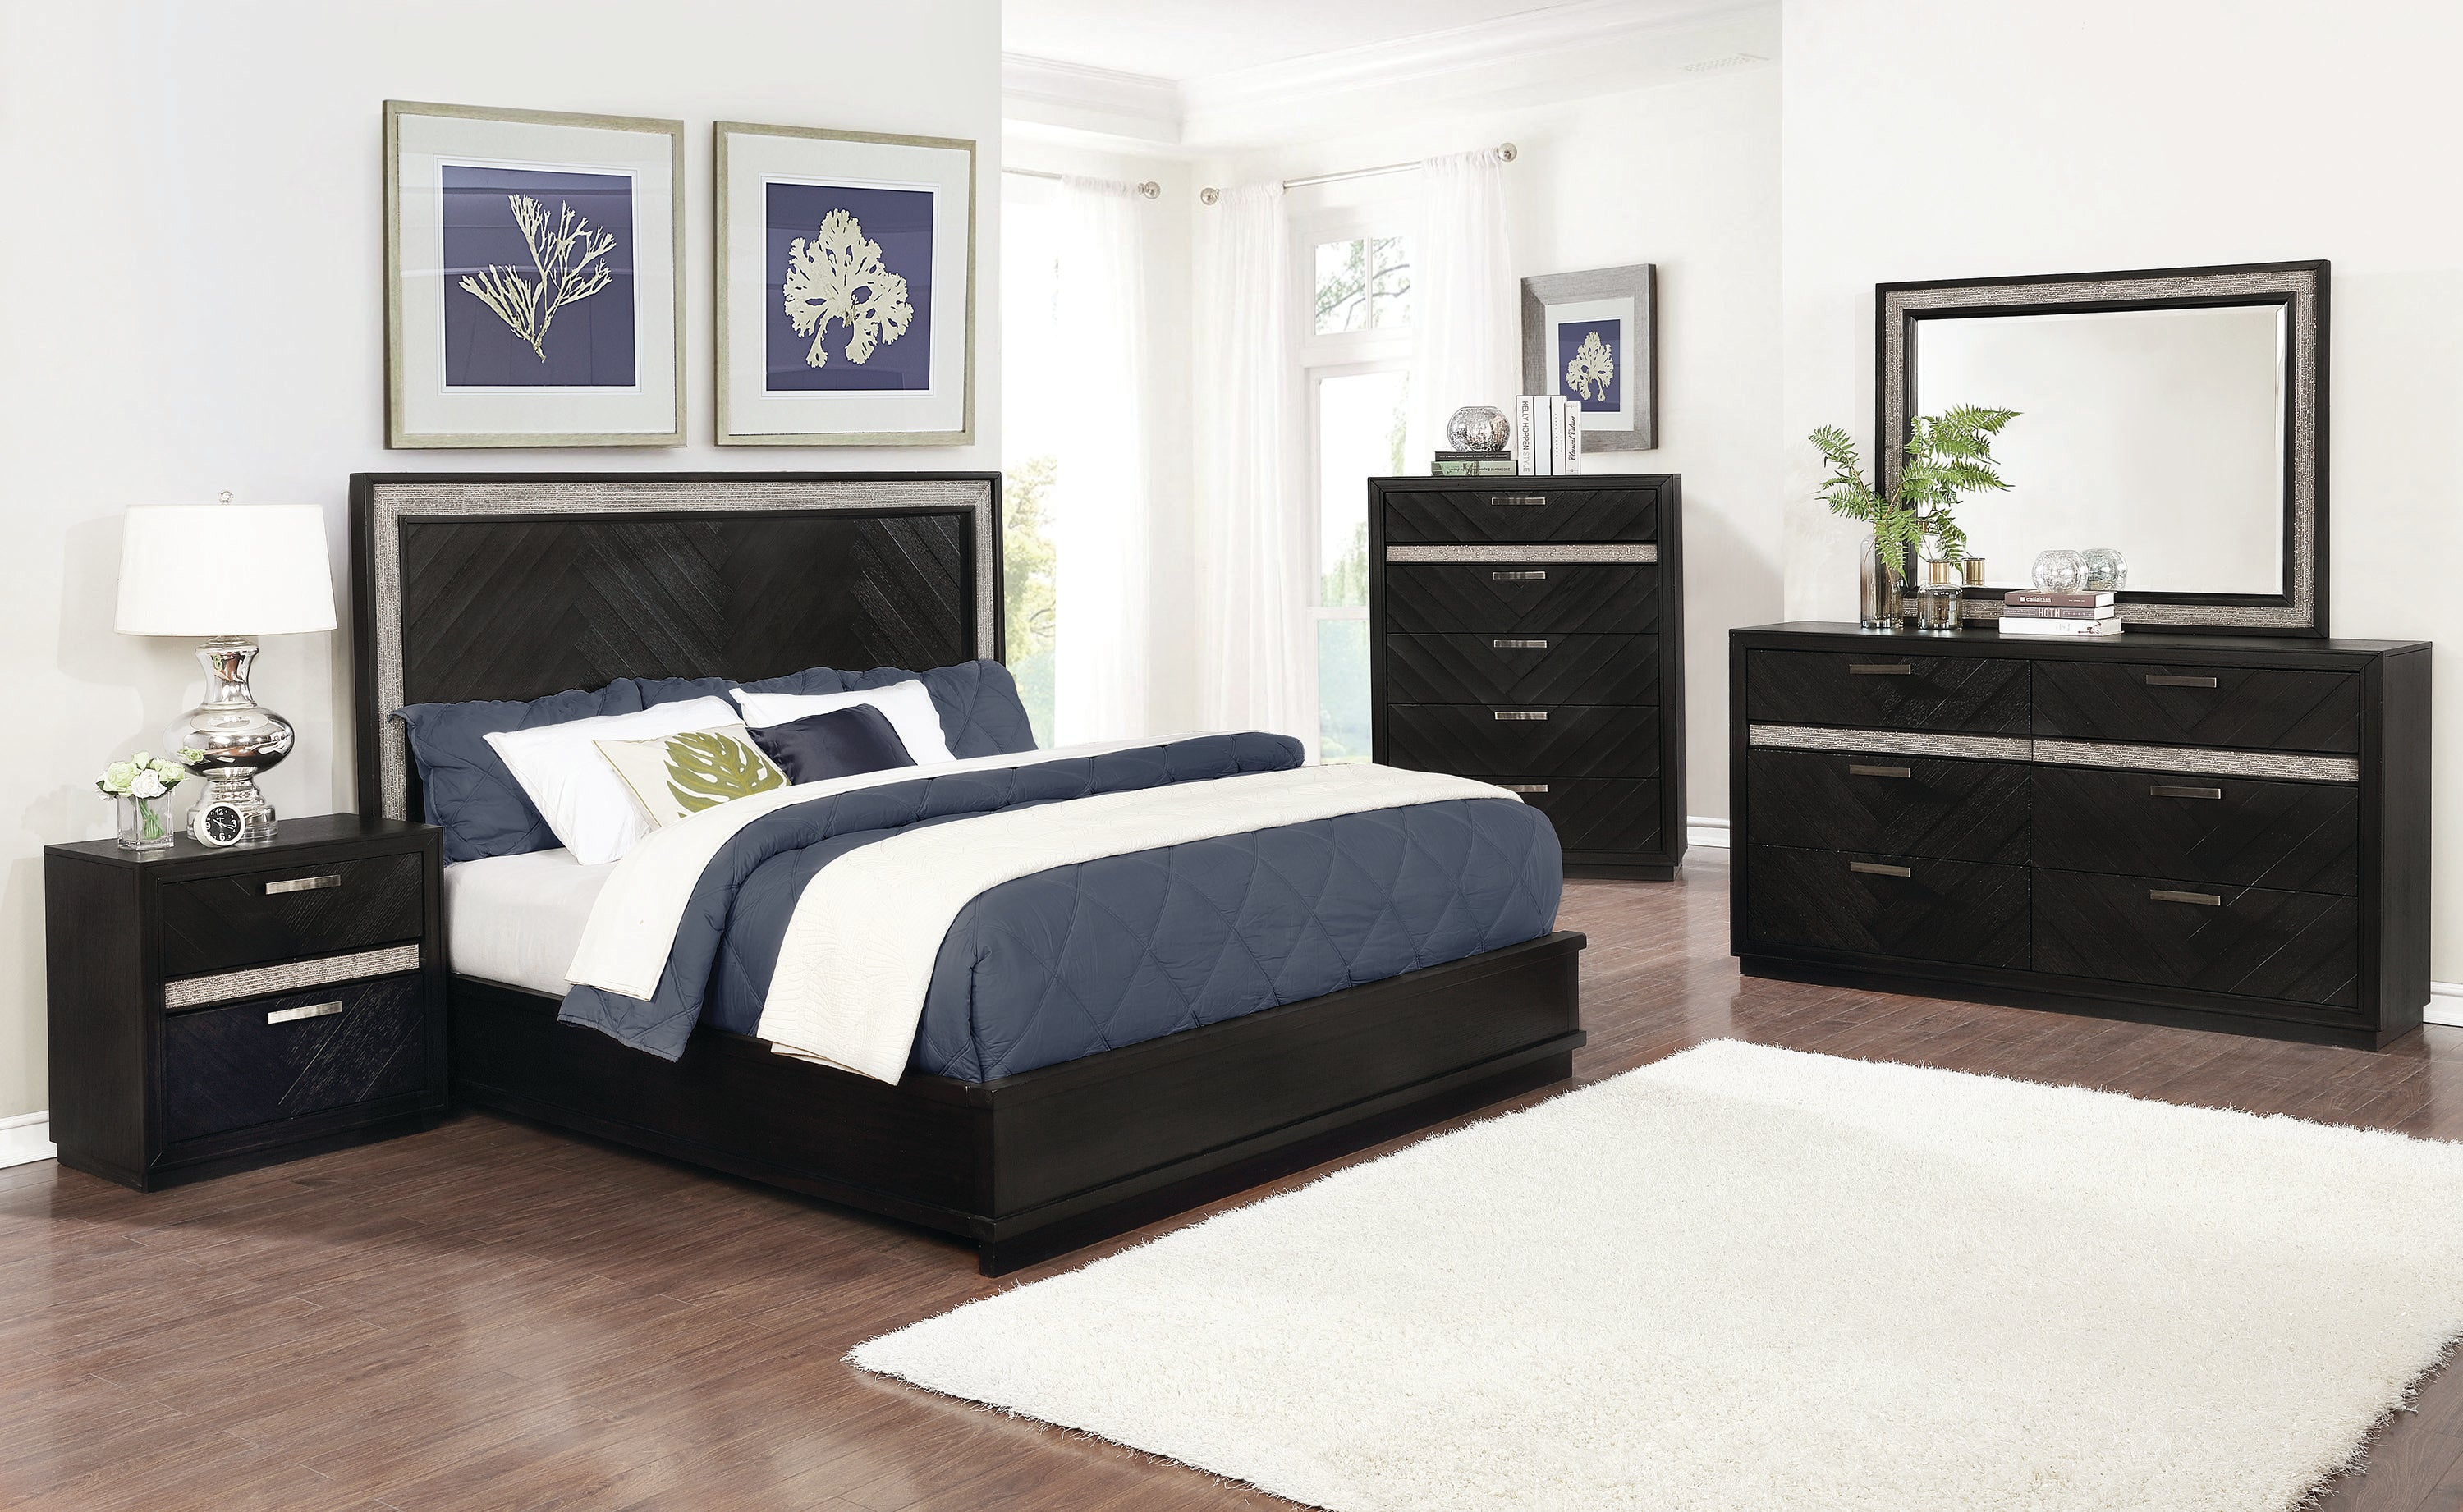 Coaster Chula Vista Dark Oak Wood Finish 4 Piece Eastern King Bedroom Set